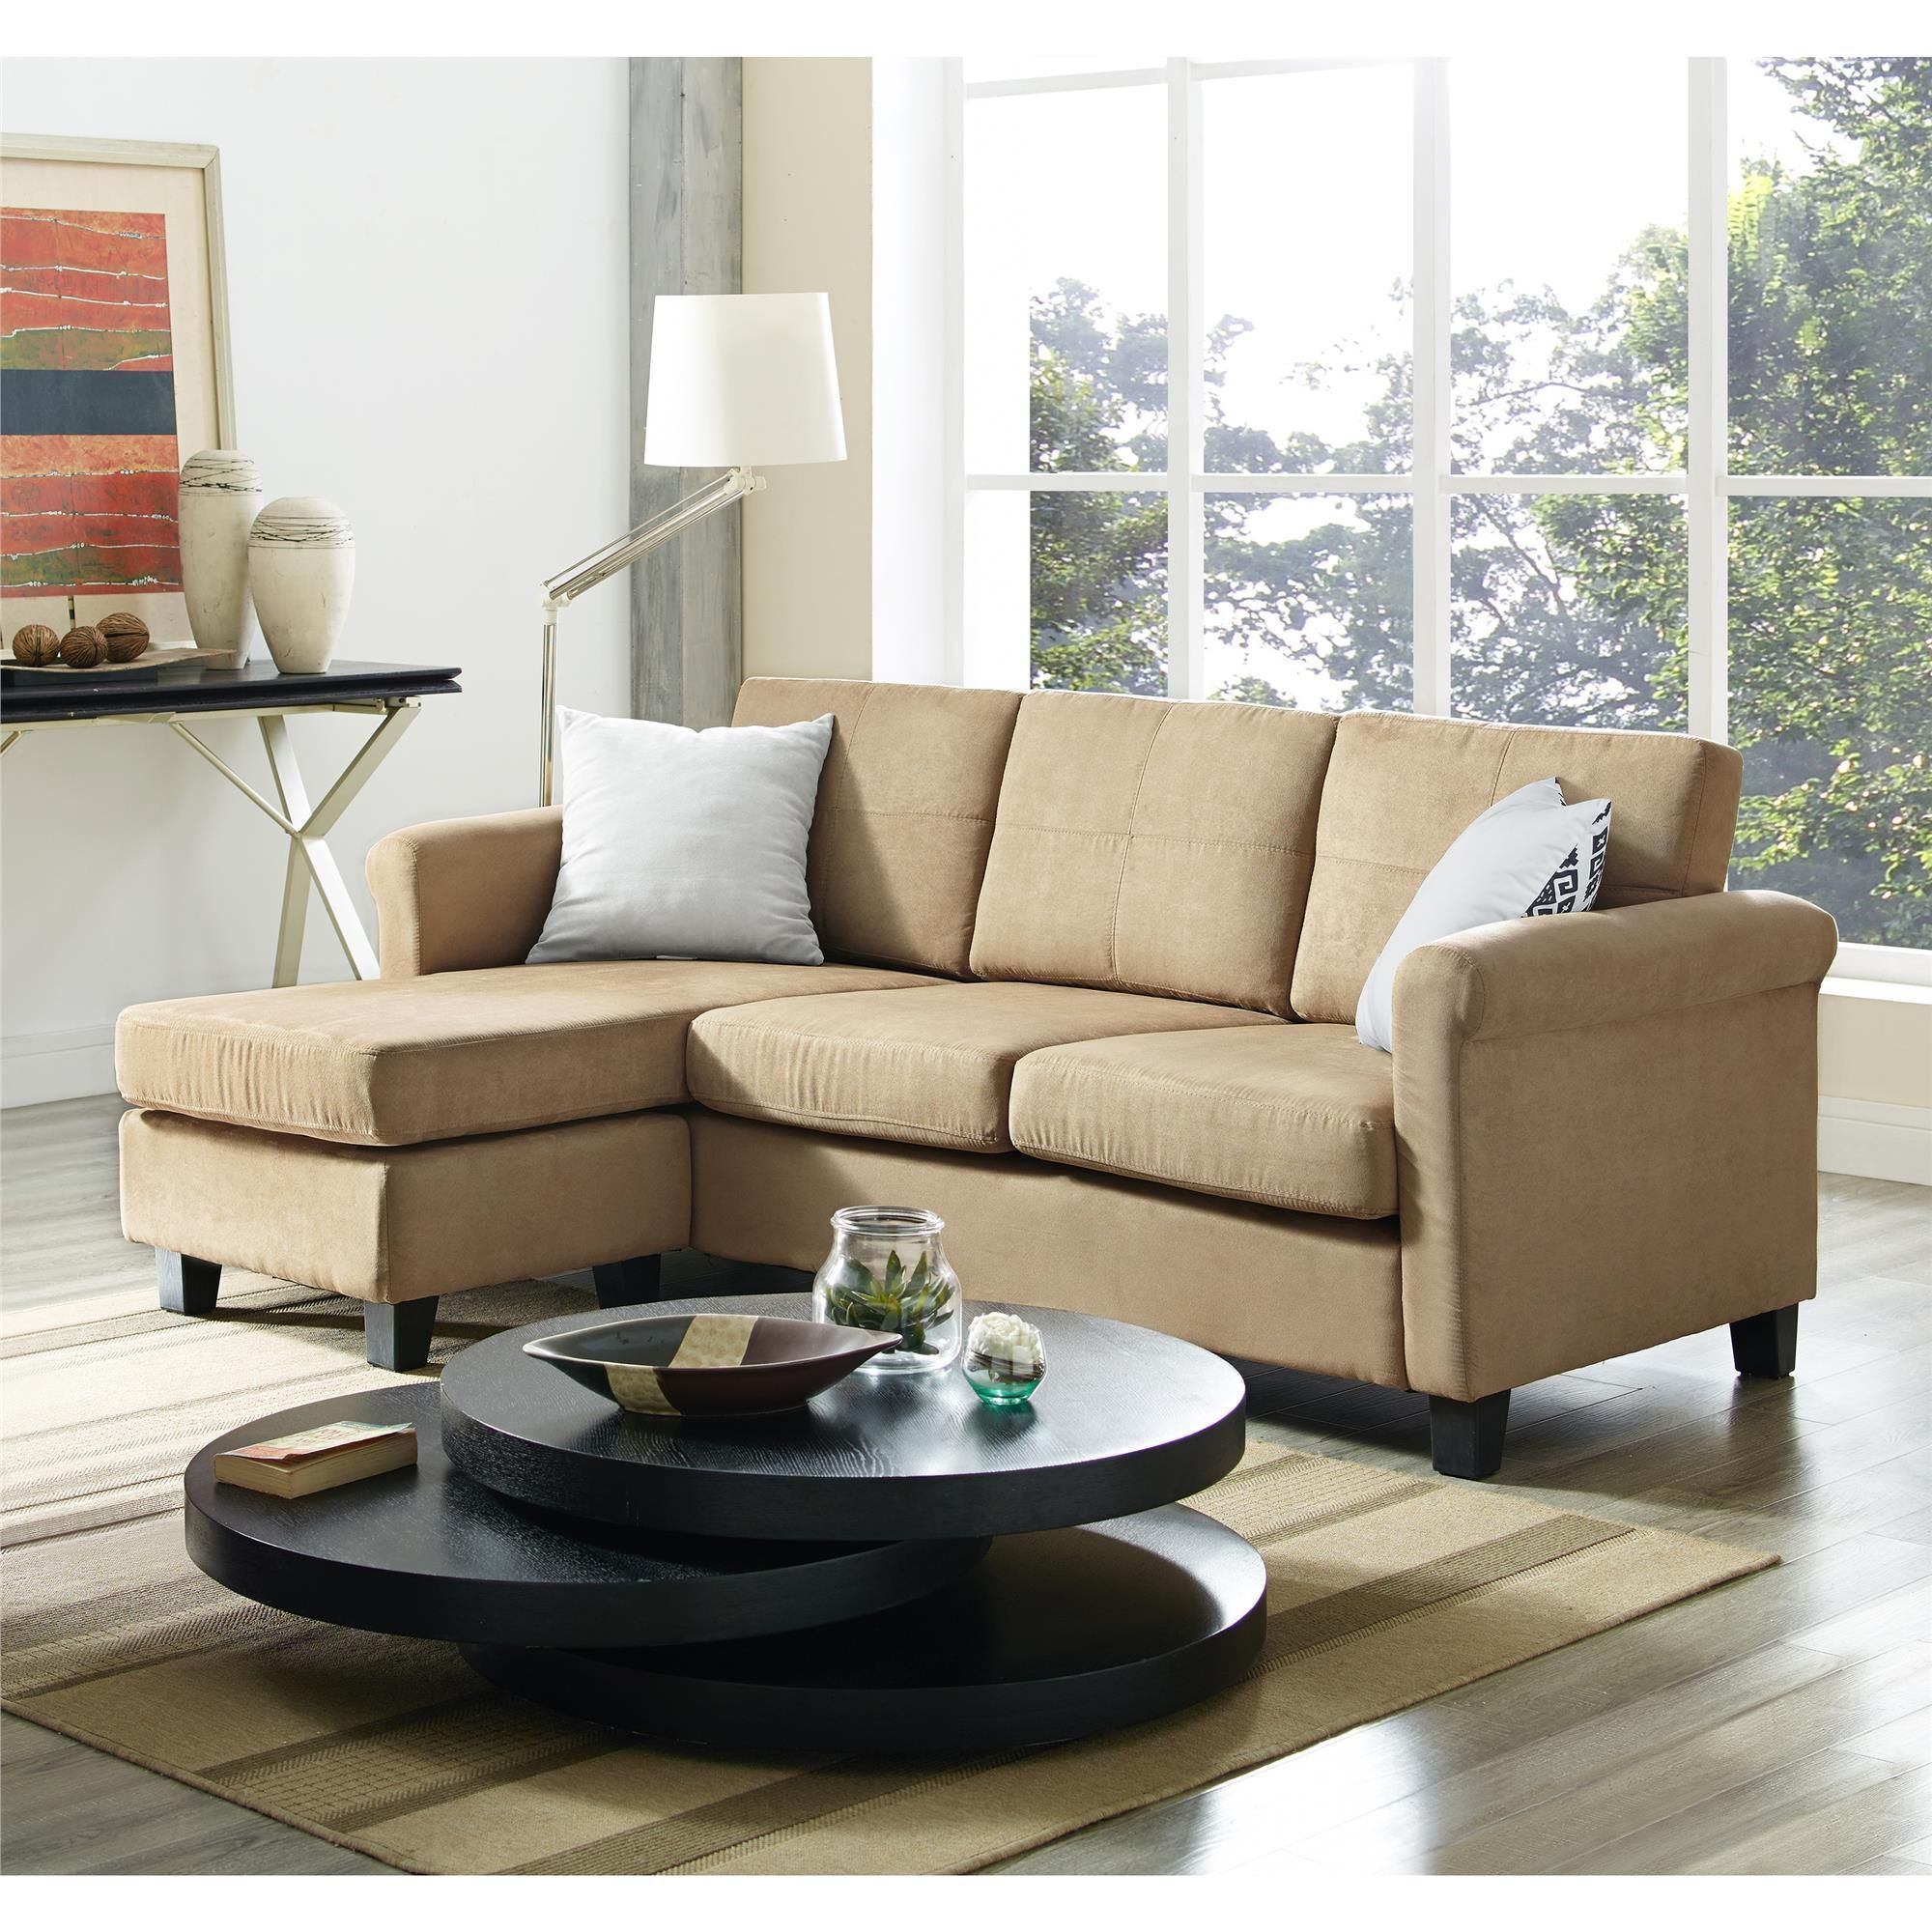 Have Comfortable And Stylish Seating Available With The Small Spaces Configurable Sectional Sofa This Combines A Rolled Arm Design